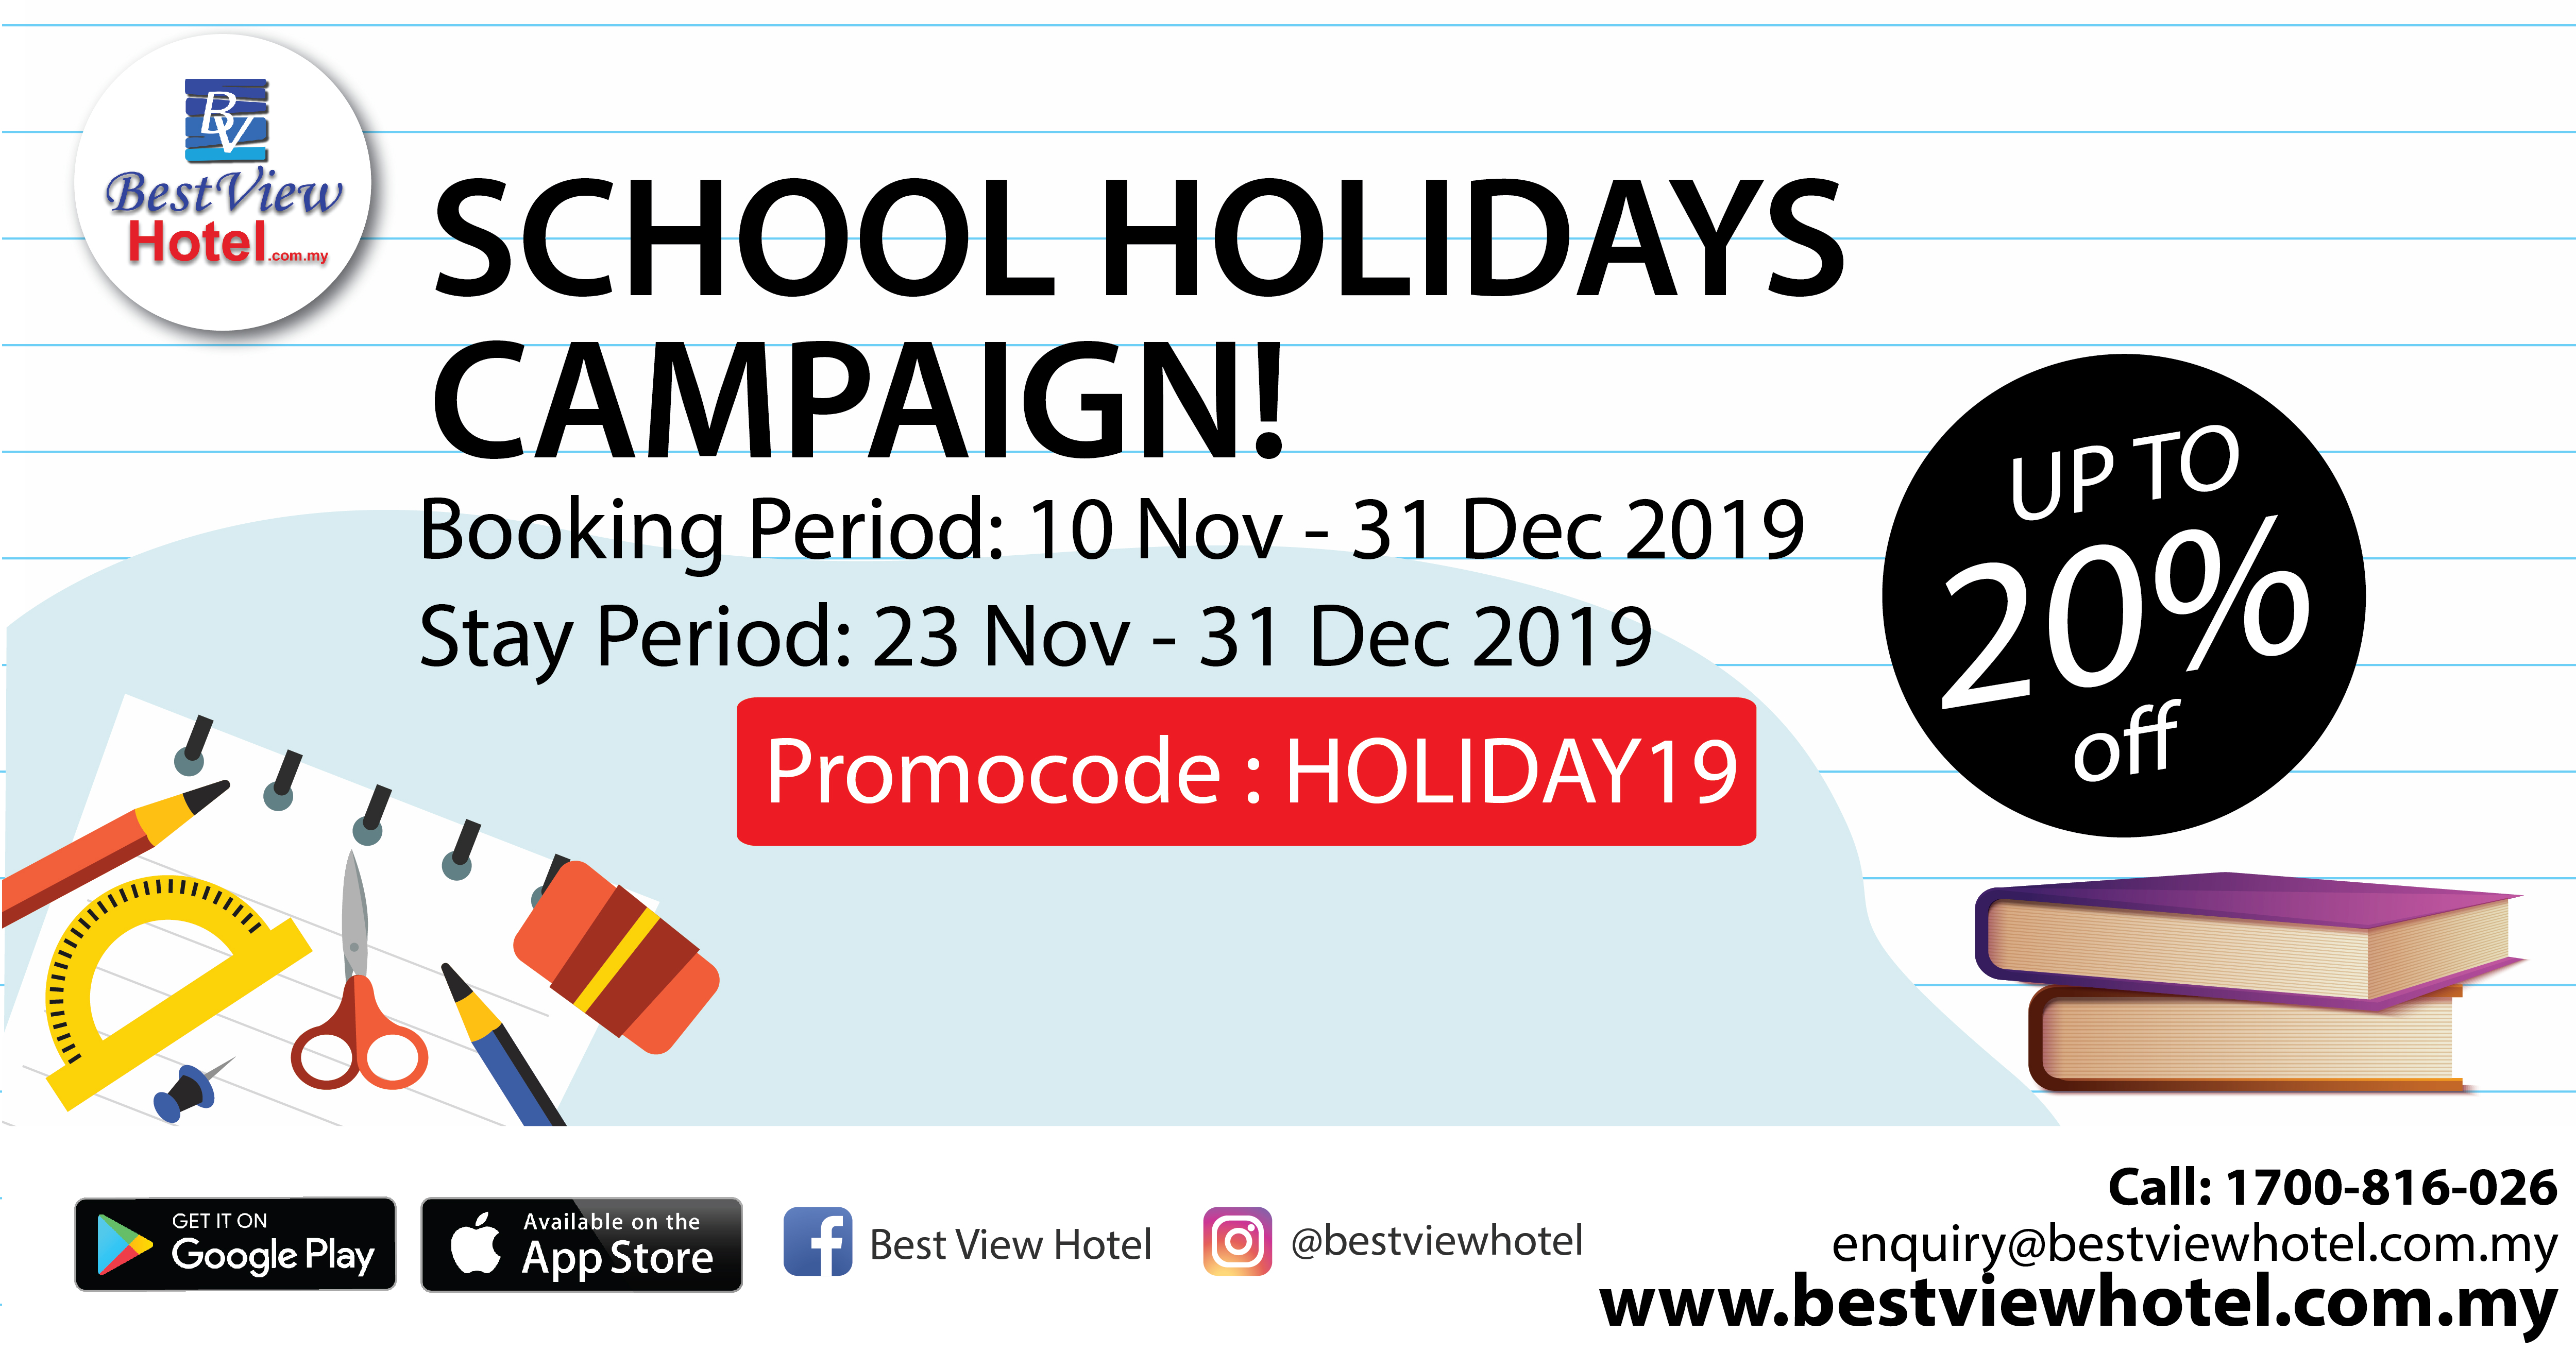 School Holiday Campaign!